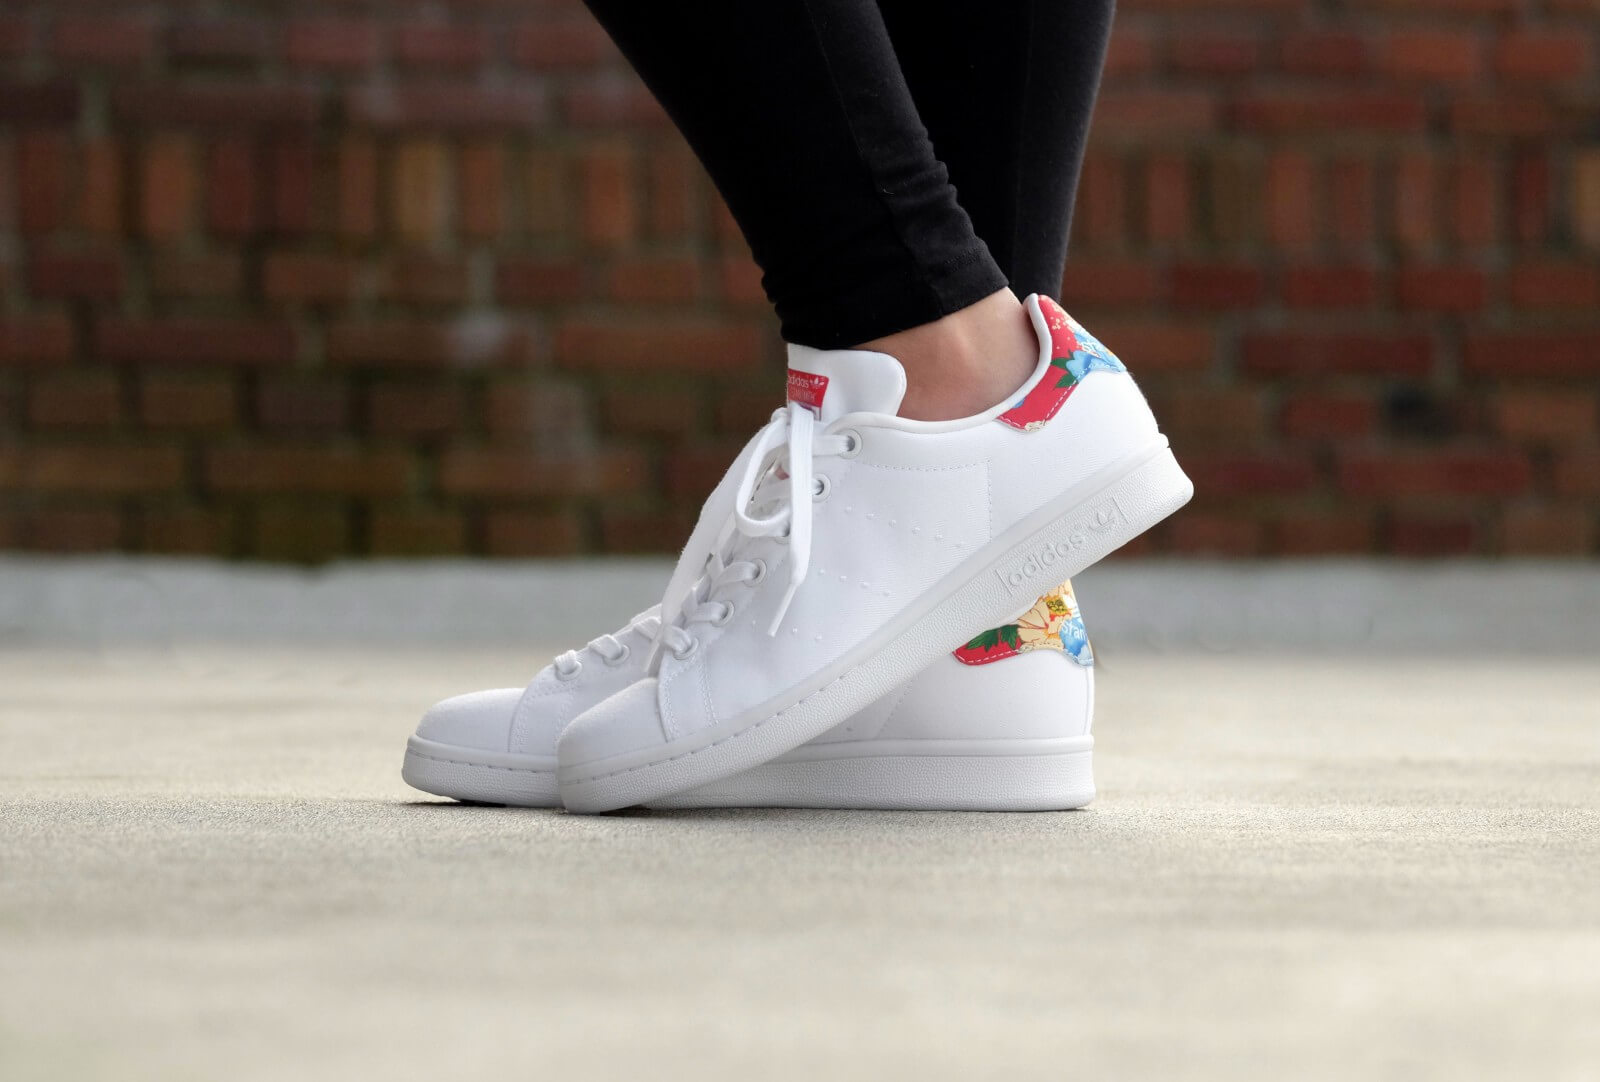 adidas wmns stan smith footwear white power red bb5157. Black Bedroom Furniture Sets. Home Design Ideas